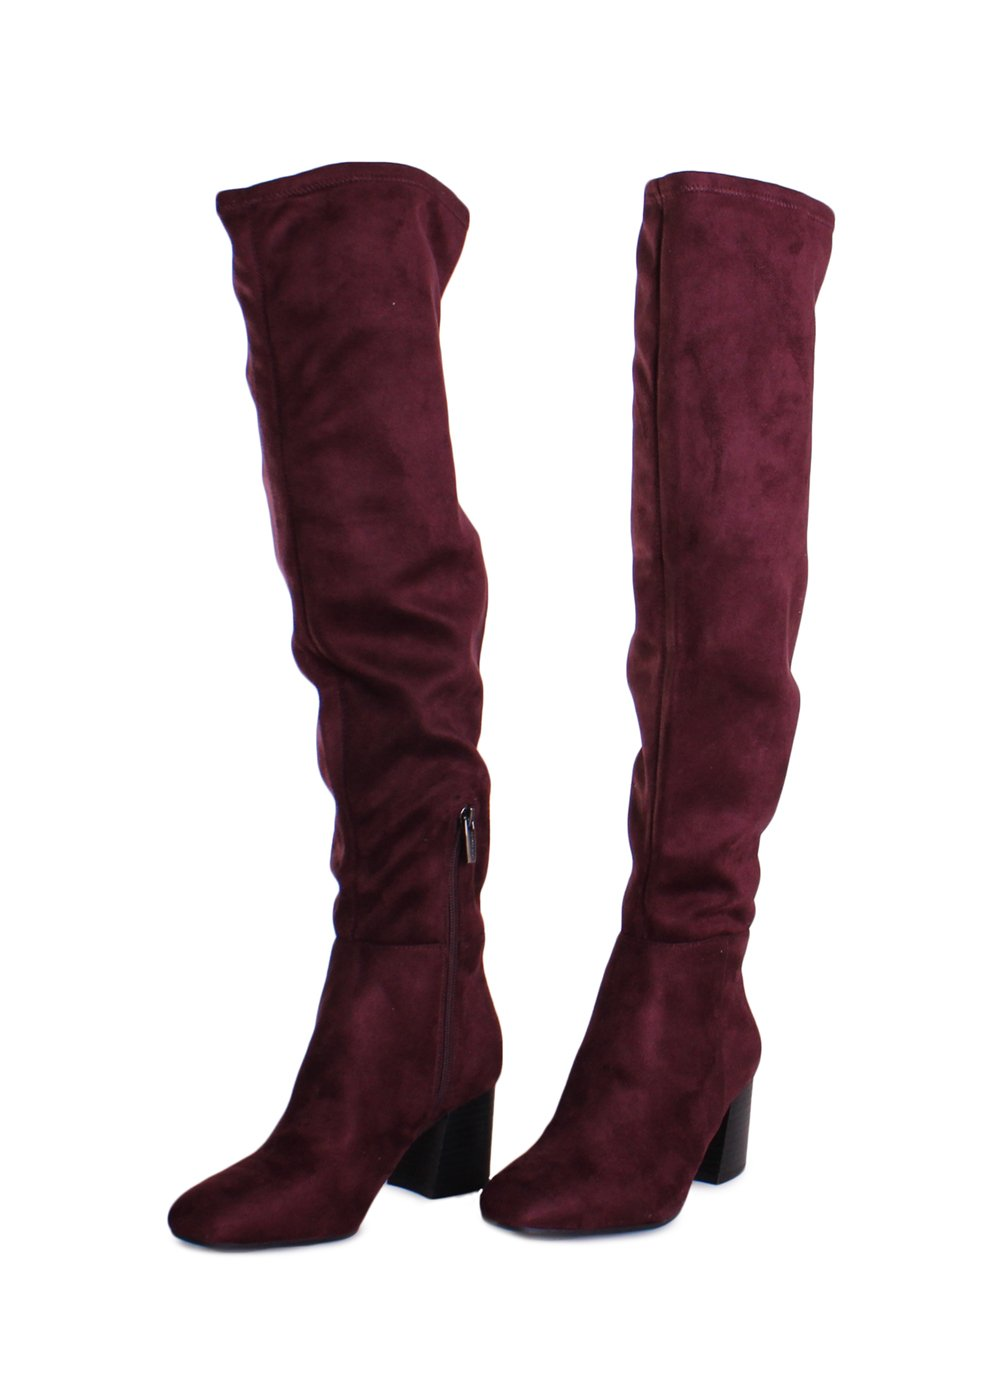 Vince Camuto Women's Kantha Over The Knee Boot B072FPFJN1 9 B(M) US|Vintage Claret